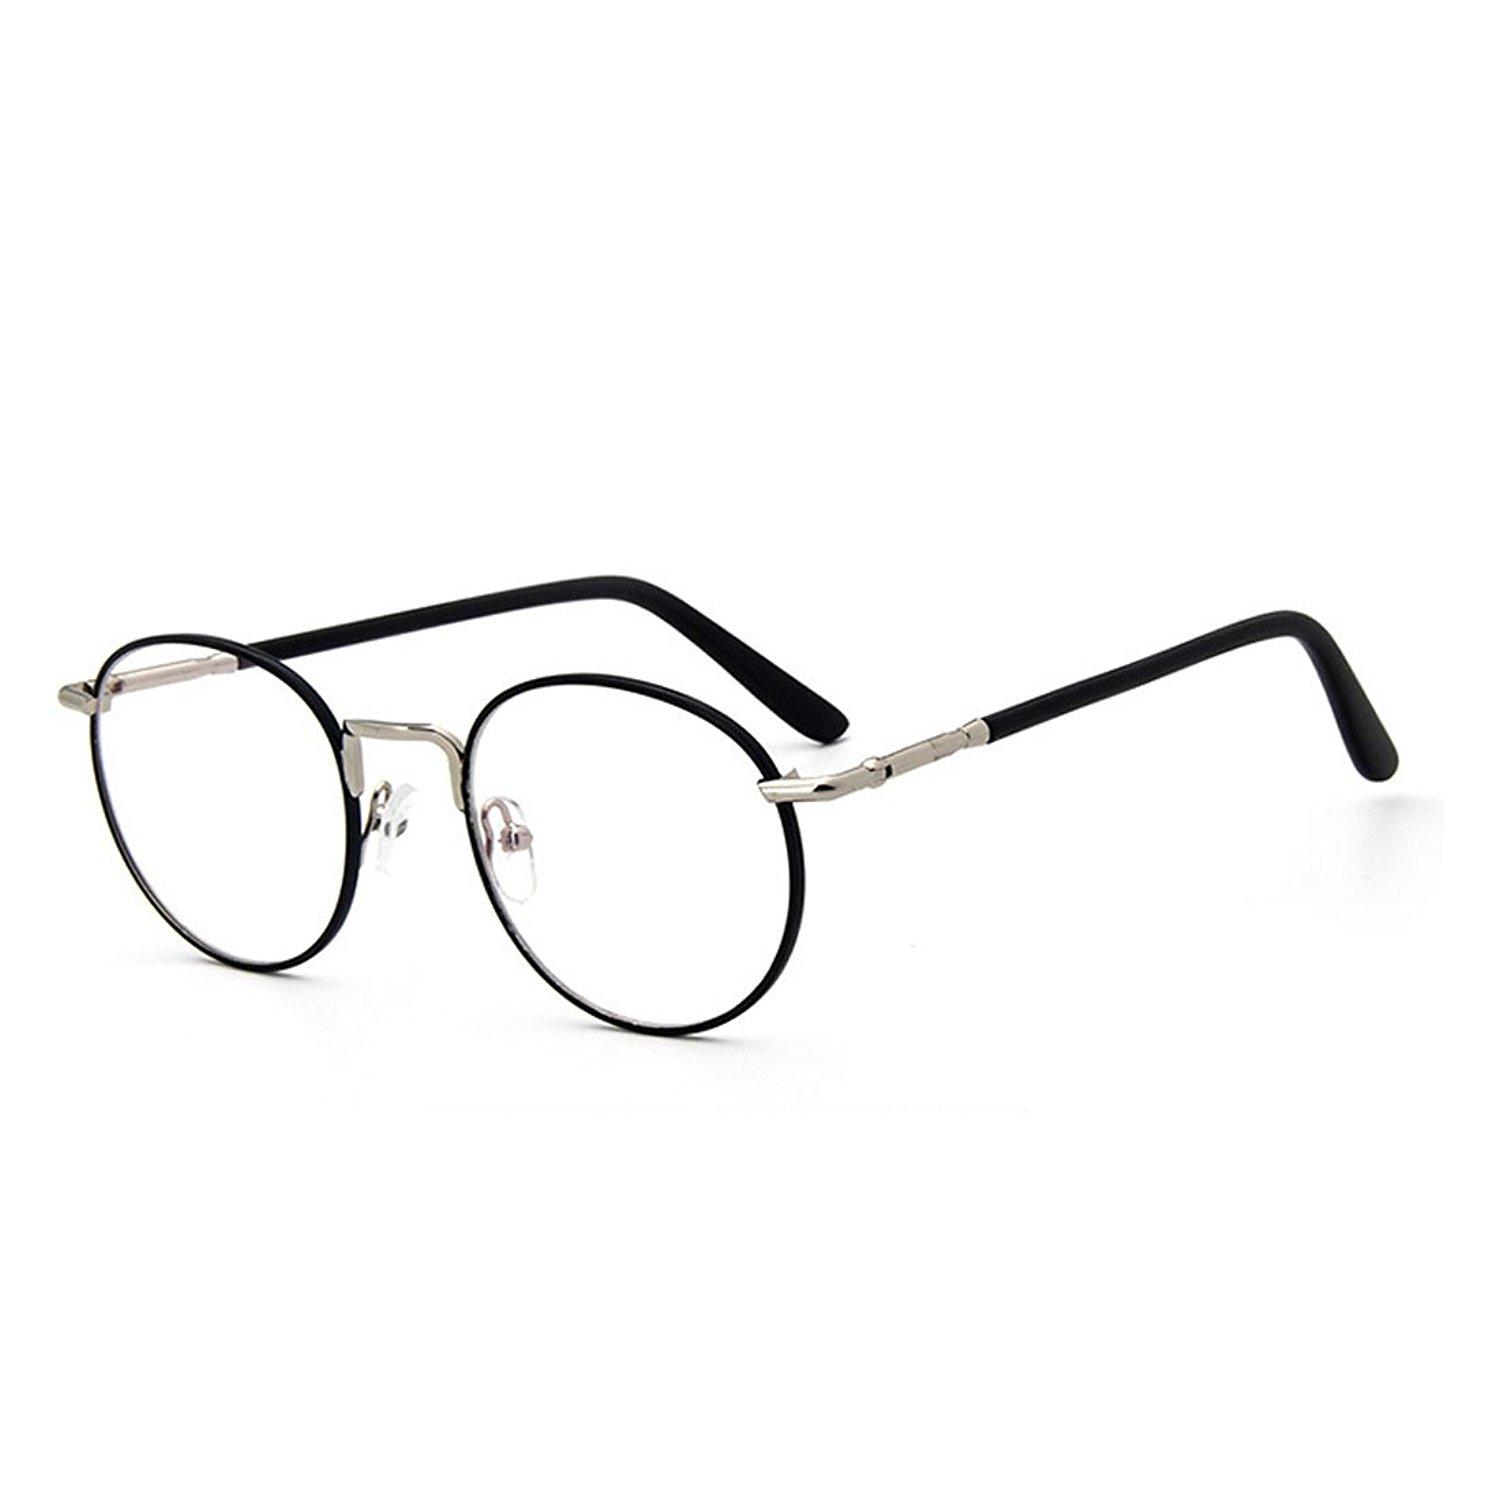 456183163bbf6 Get Quotations · D.King Vintage Oversized Metal Glasses Frame Clear Lens  Round Circle Eye Glasses